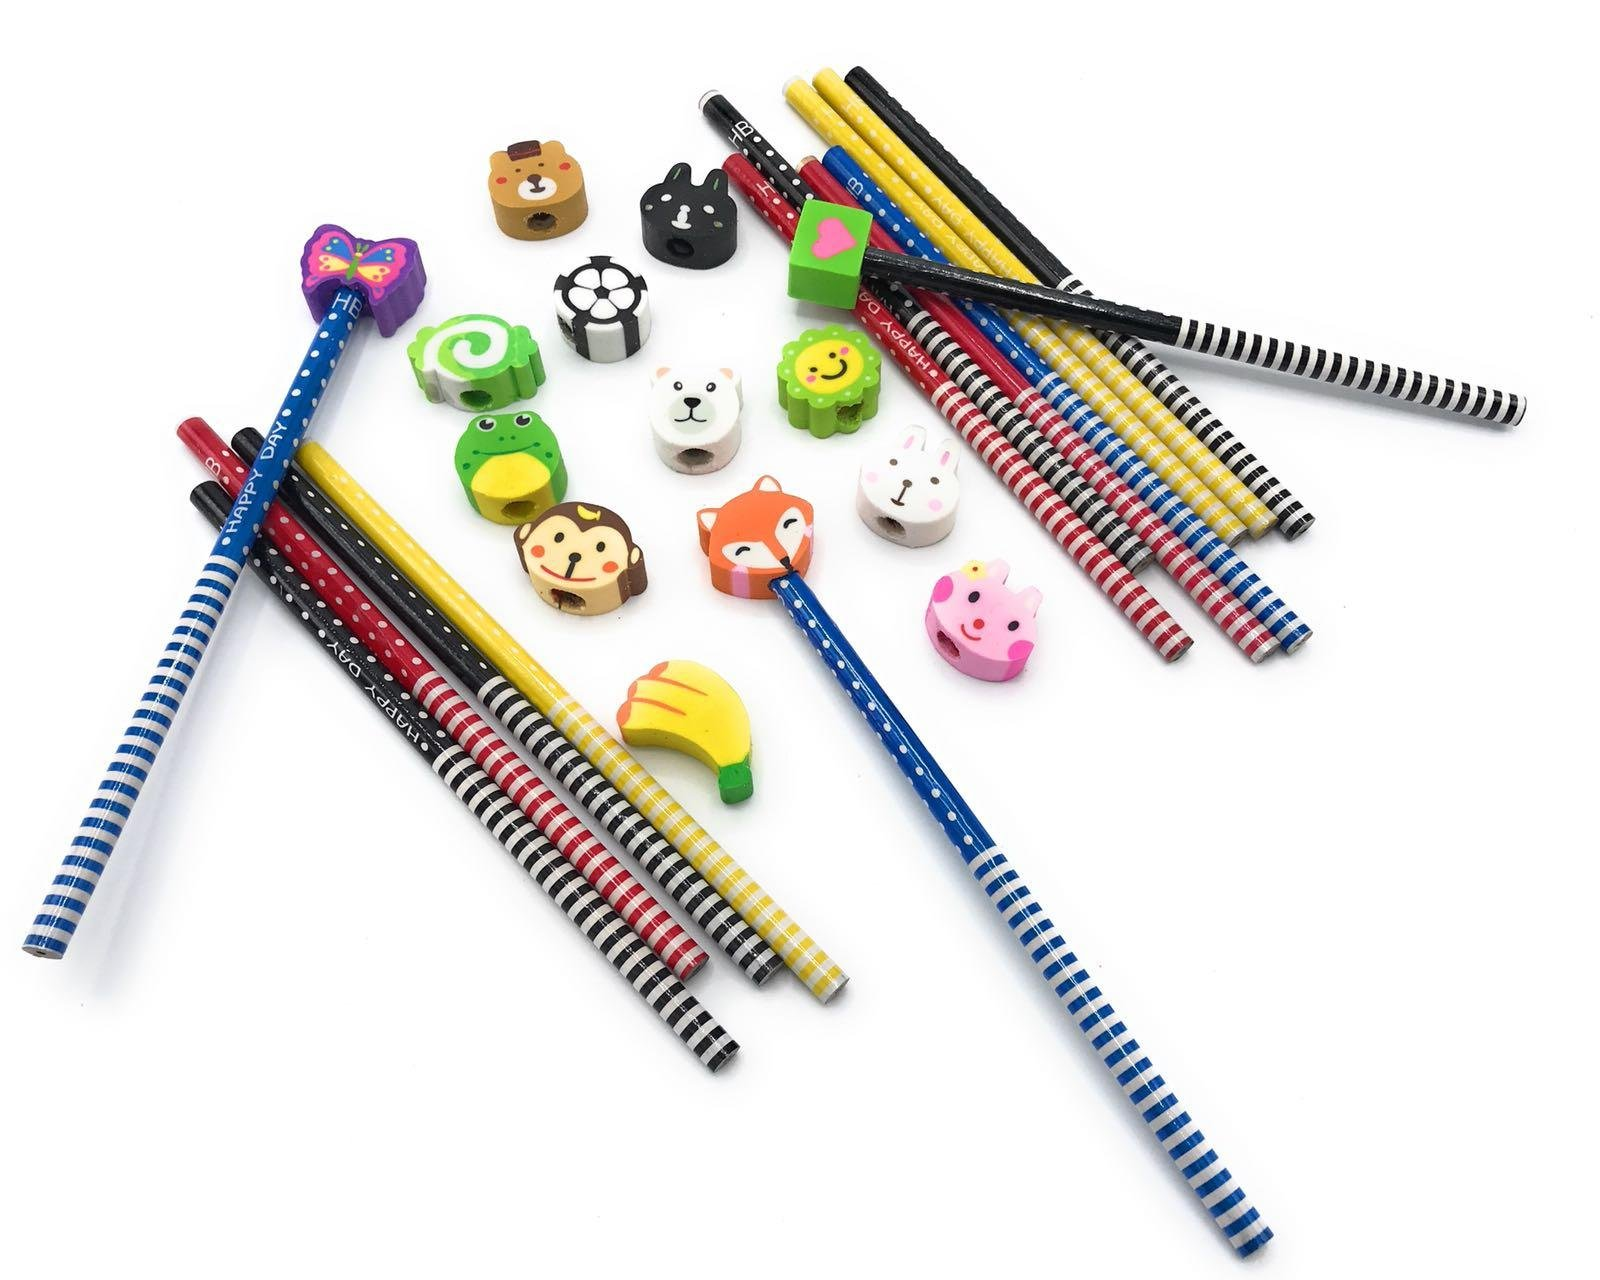 Gennilo Pack of 40 Pencils with Erasers Colorful Novelty Cartoon Animals' Stripe Eraser Wood Pencils (7.28'') for Students & Children Gift (40pcs cartoon pencil with eraser), Animals Assorted by Gennilo (Image #6)